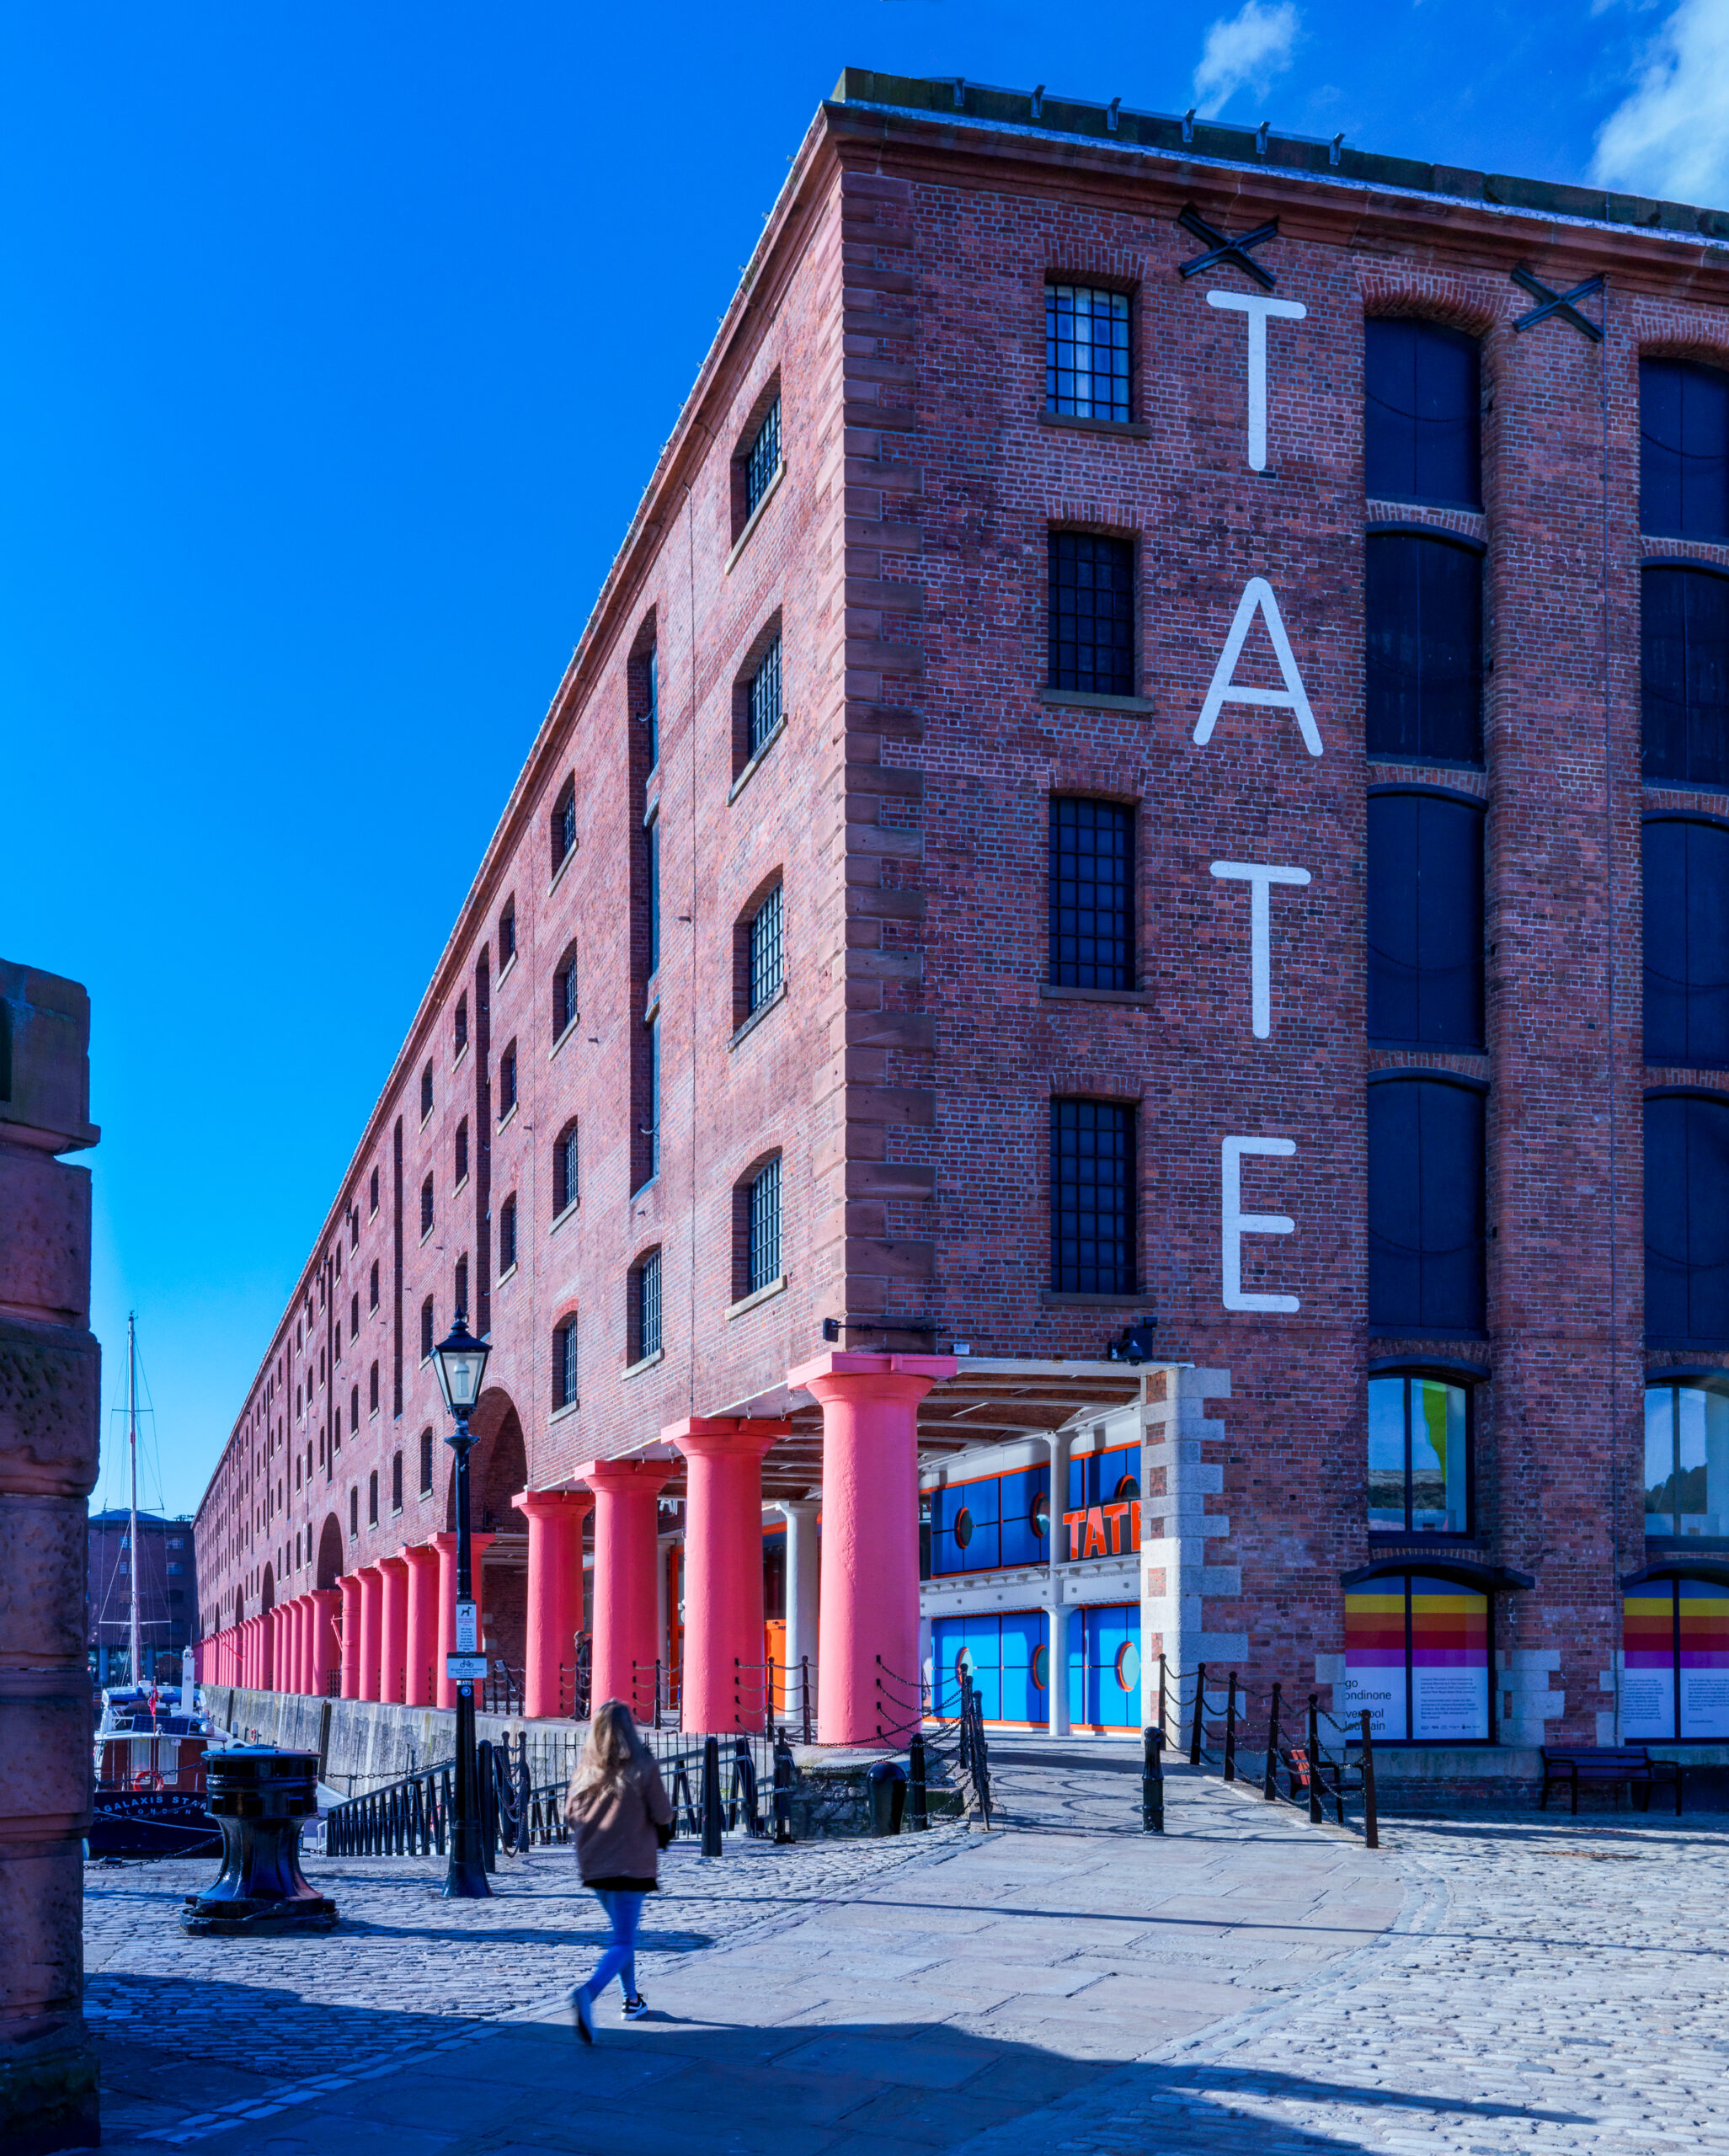 Tate Liverpool: HMP to Hope: Escaping the Frame (Symposium)